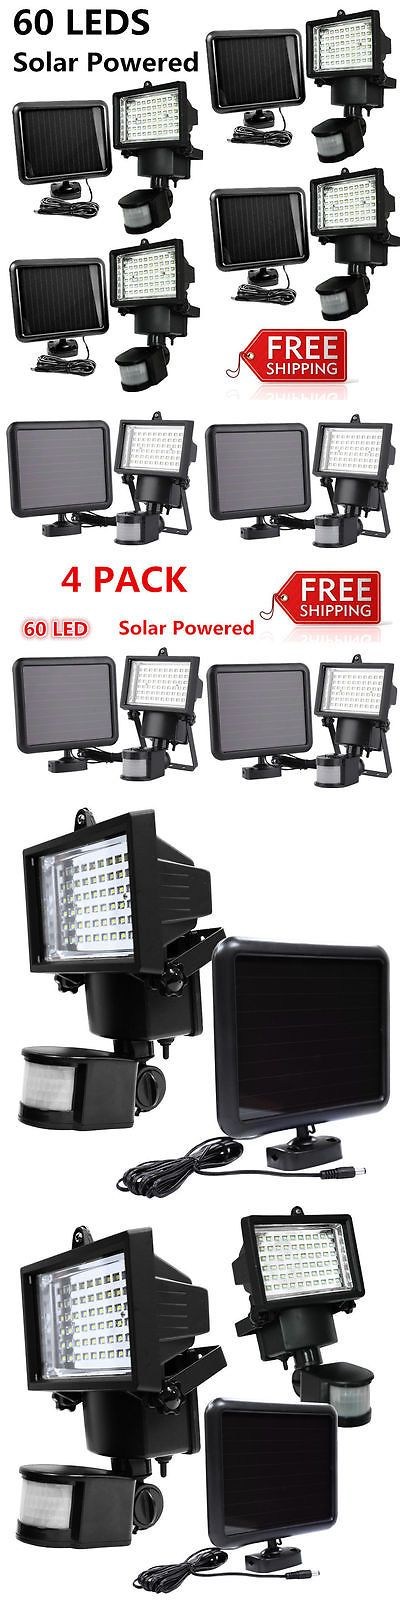 farm and garden: 4 Pack 60 Smd Leds Outdoor Solar Motion Sensor Security Flood Light Spot 80 100 BUY IT NOW ONLY: $63.99